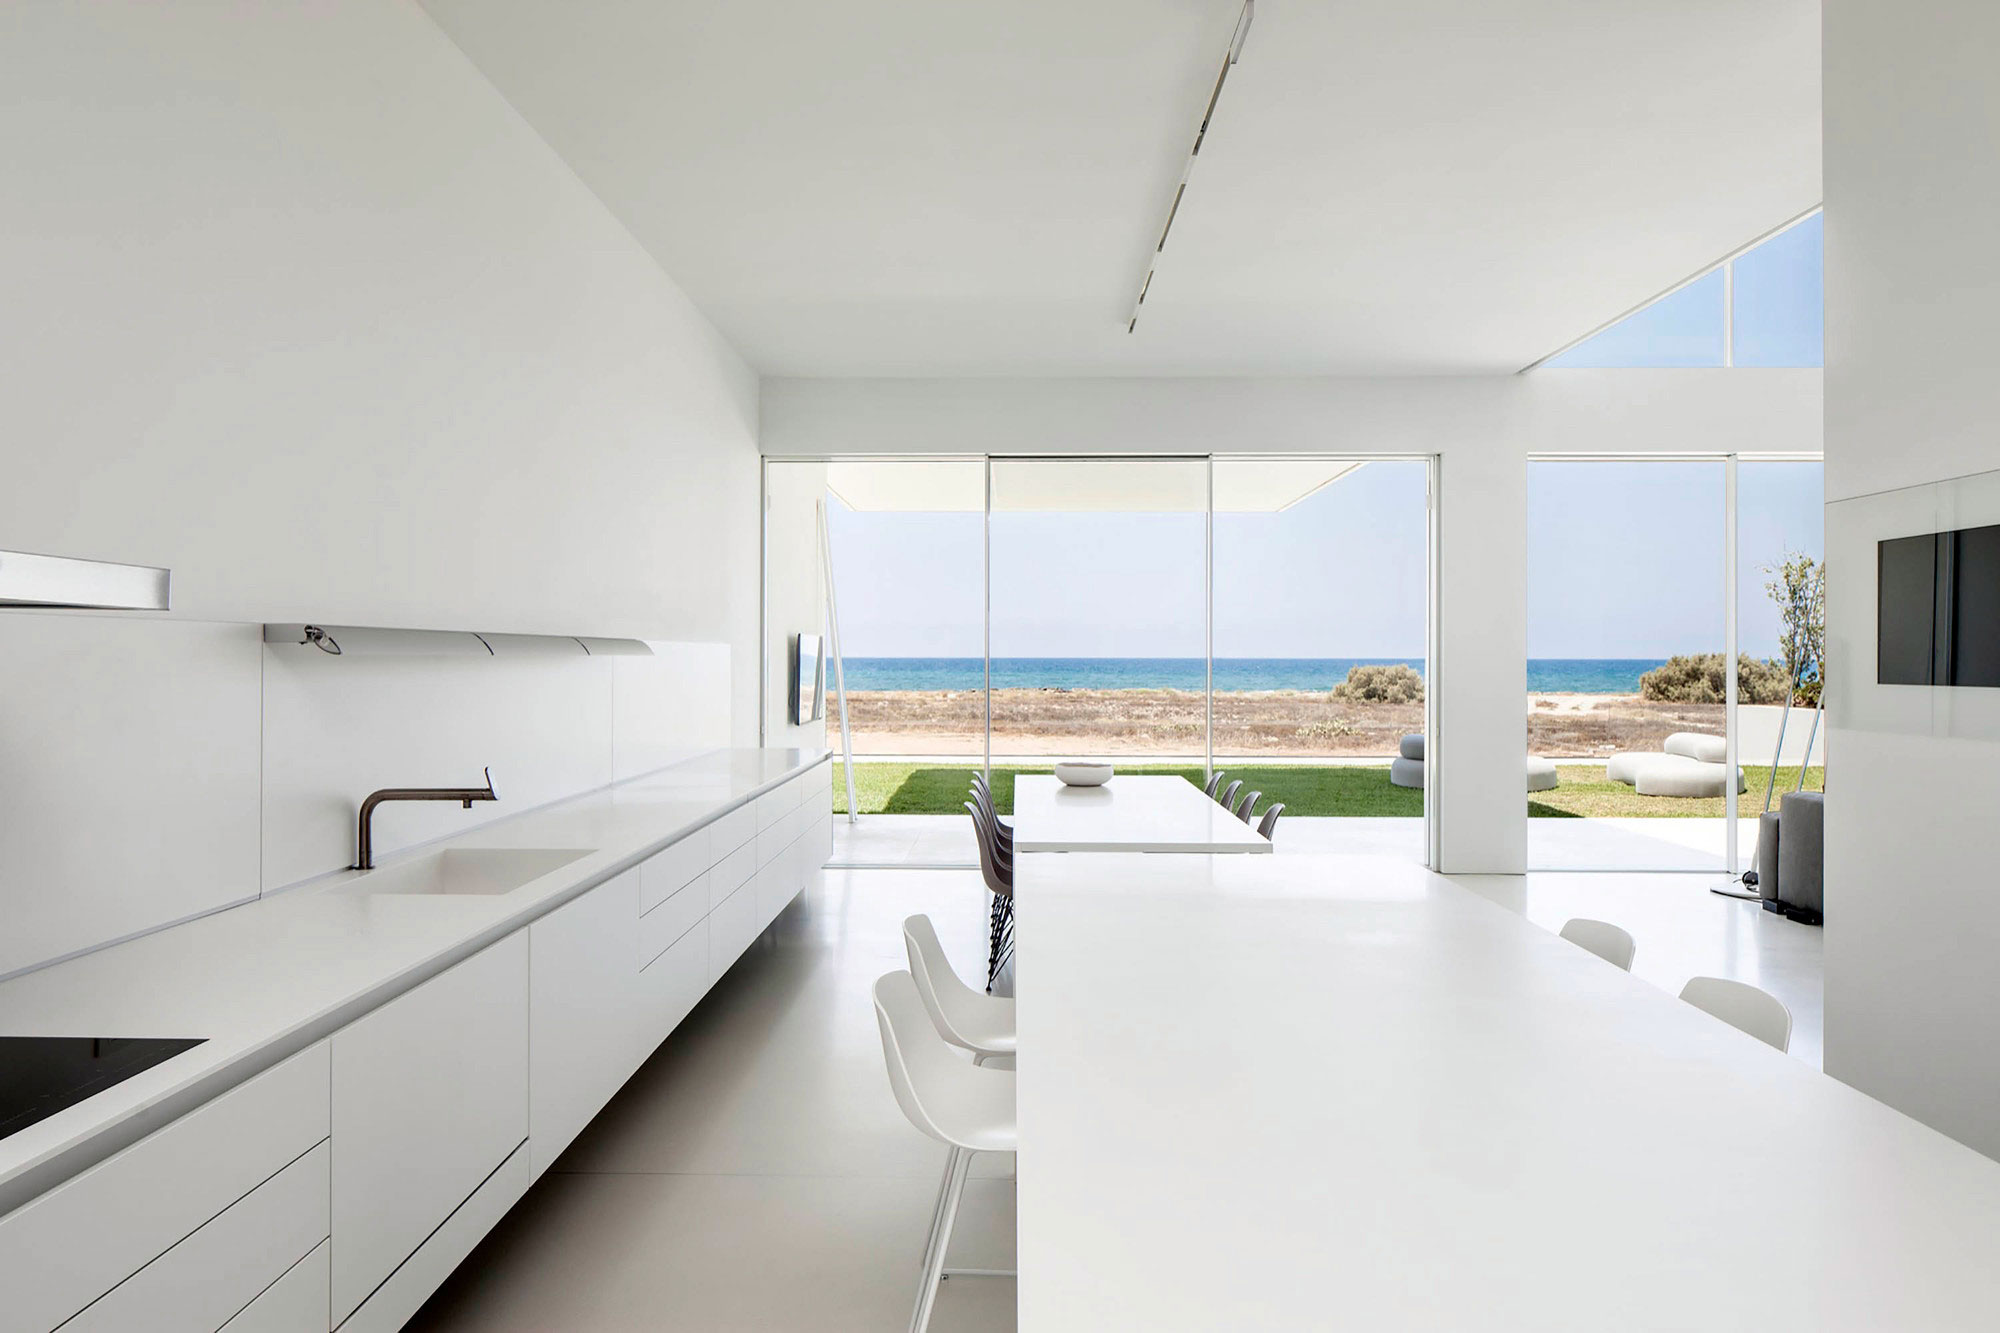 Luminous A House by the Sea home with Mediterranean Sea views by Pitsou Kedem Architects-11